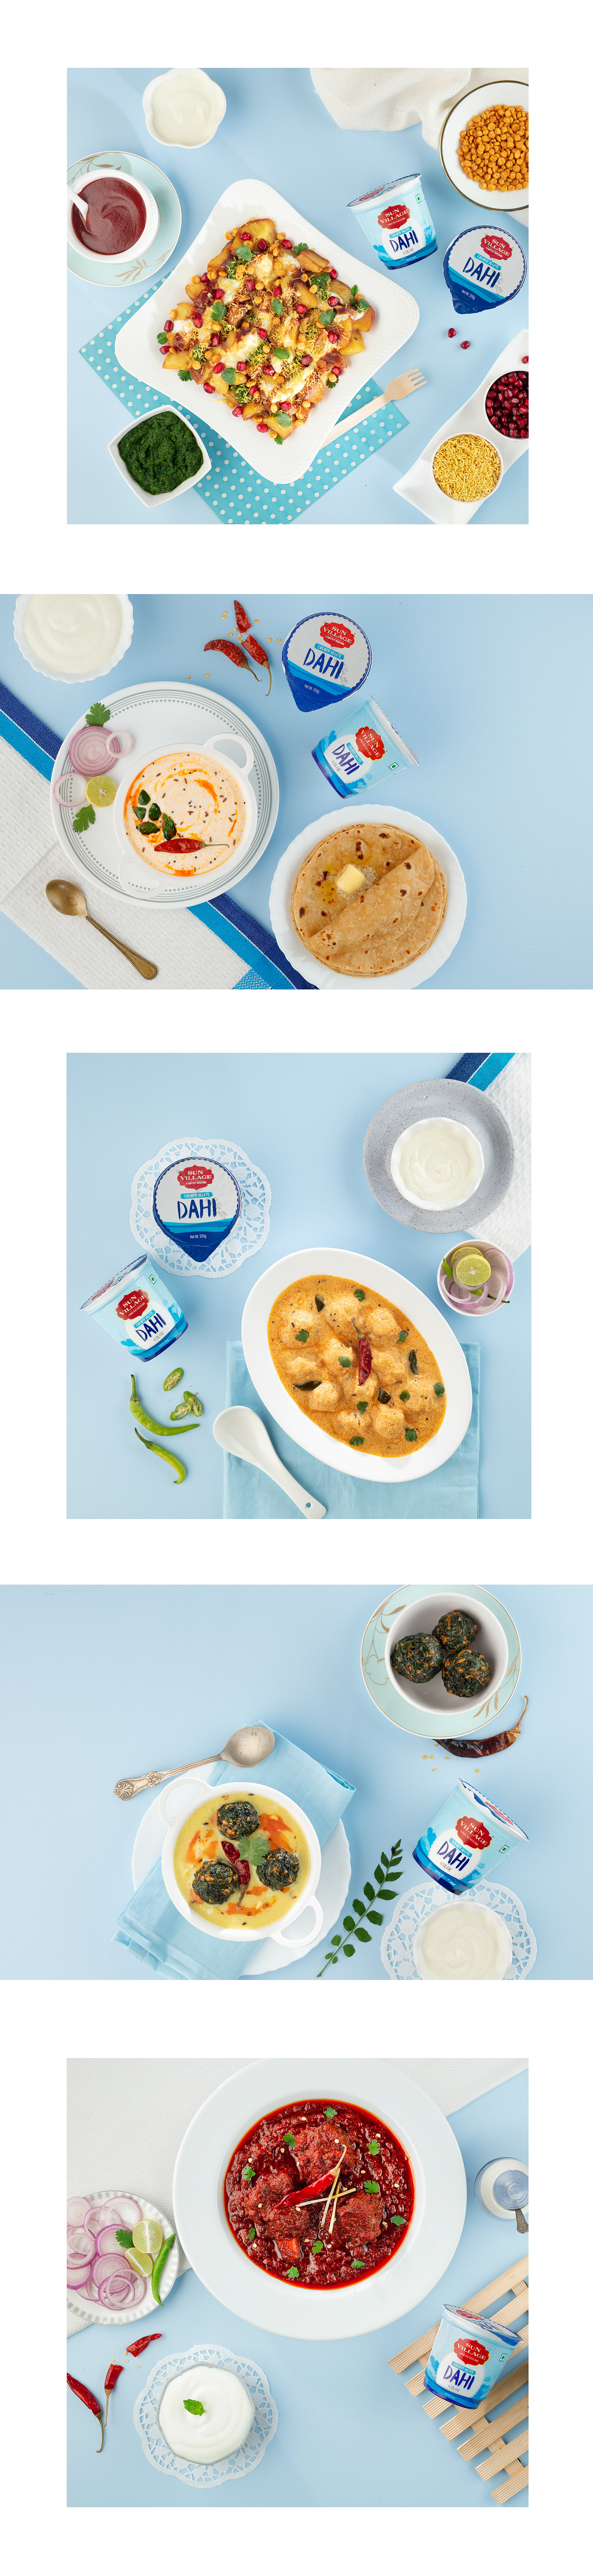 Dairy product shoot with contemporary style food styling by Janki Patel to show the use of products